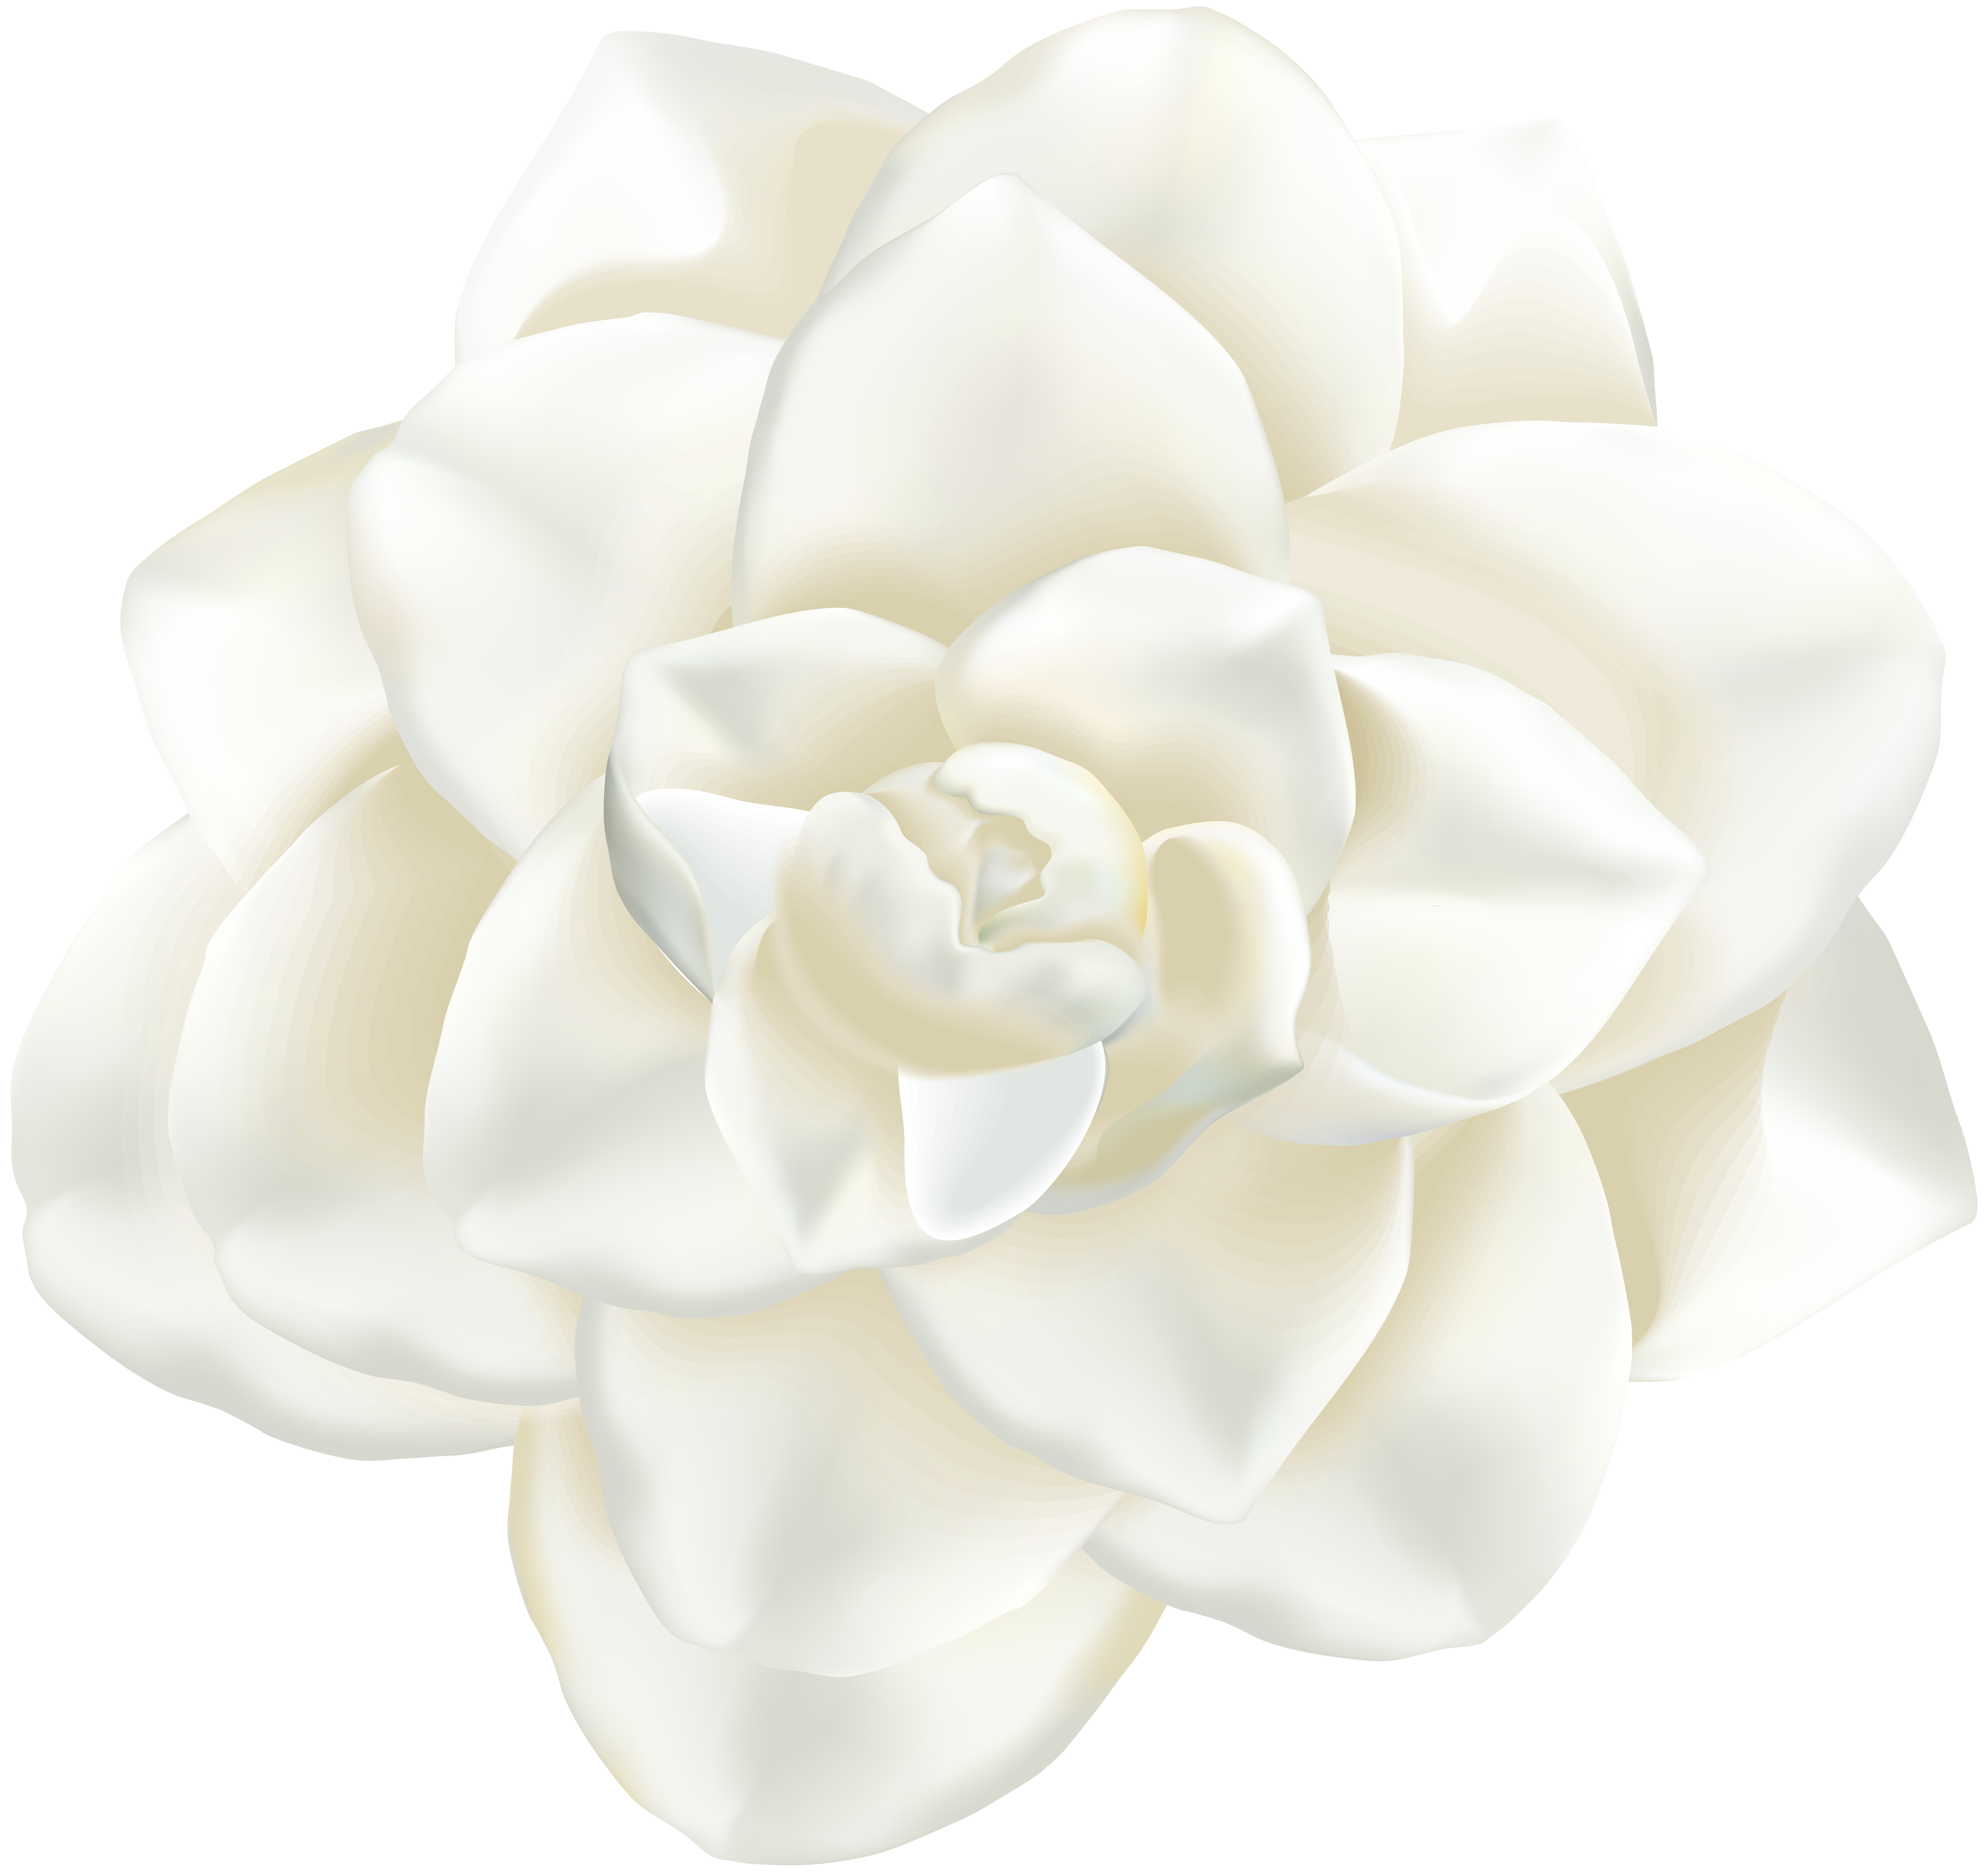 Clip art image gallery. White flower png